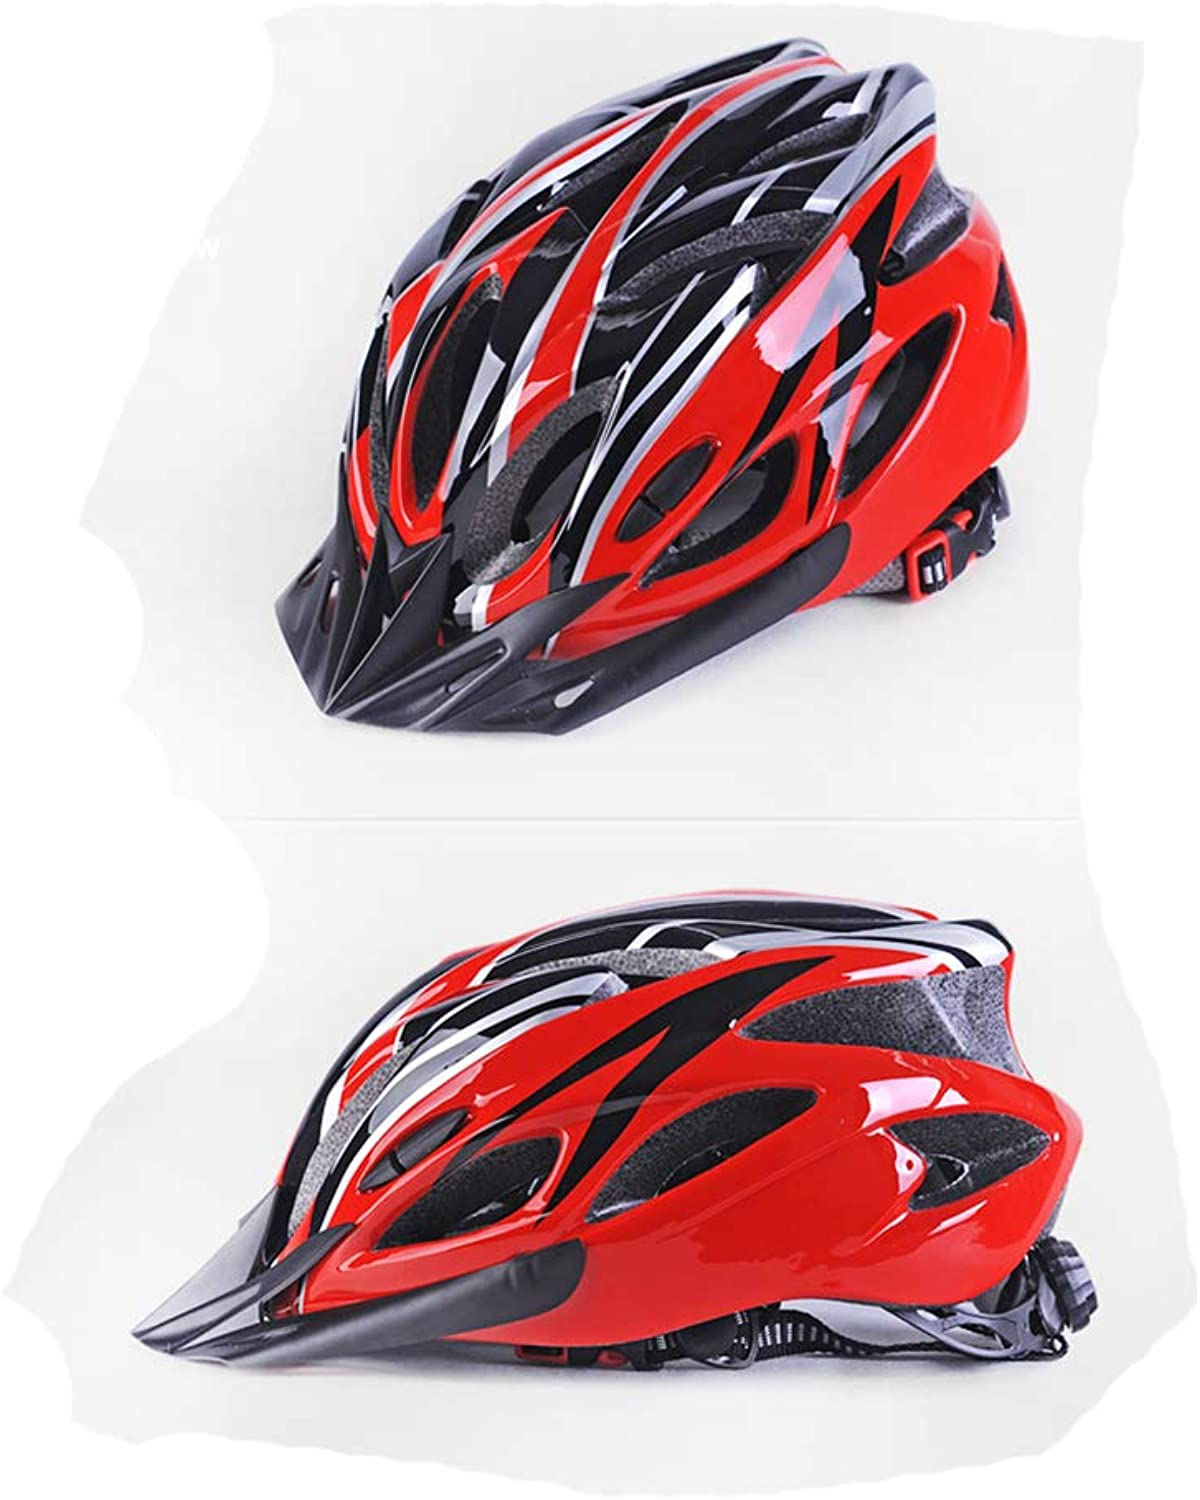 Cycling Helmet Lightweight Bicycle Helmet Insect Net Padded Road Mountain Bike Cycling Comfortable Breathable Predect Adjustable Helmets,Black,M